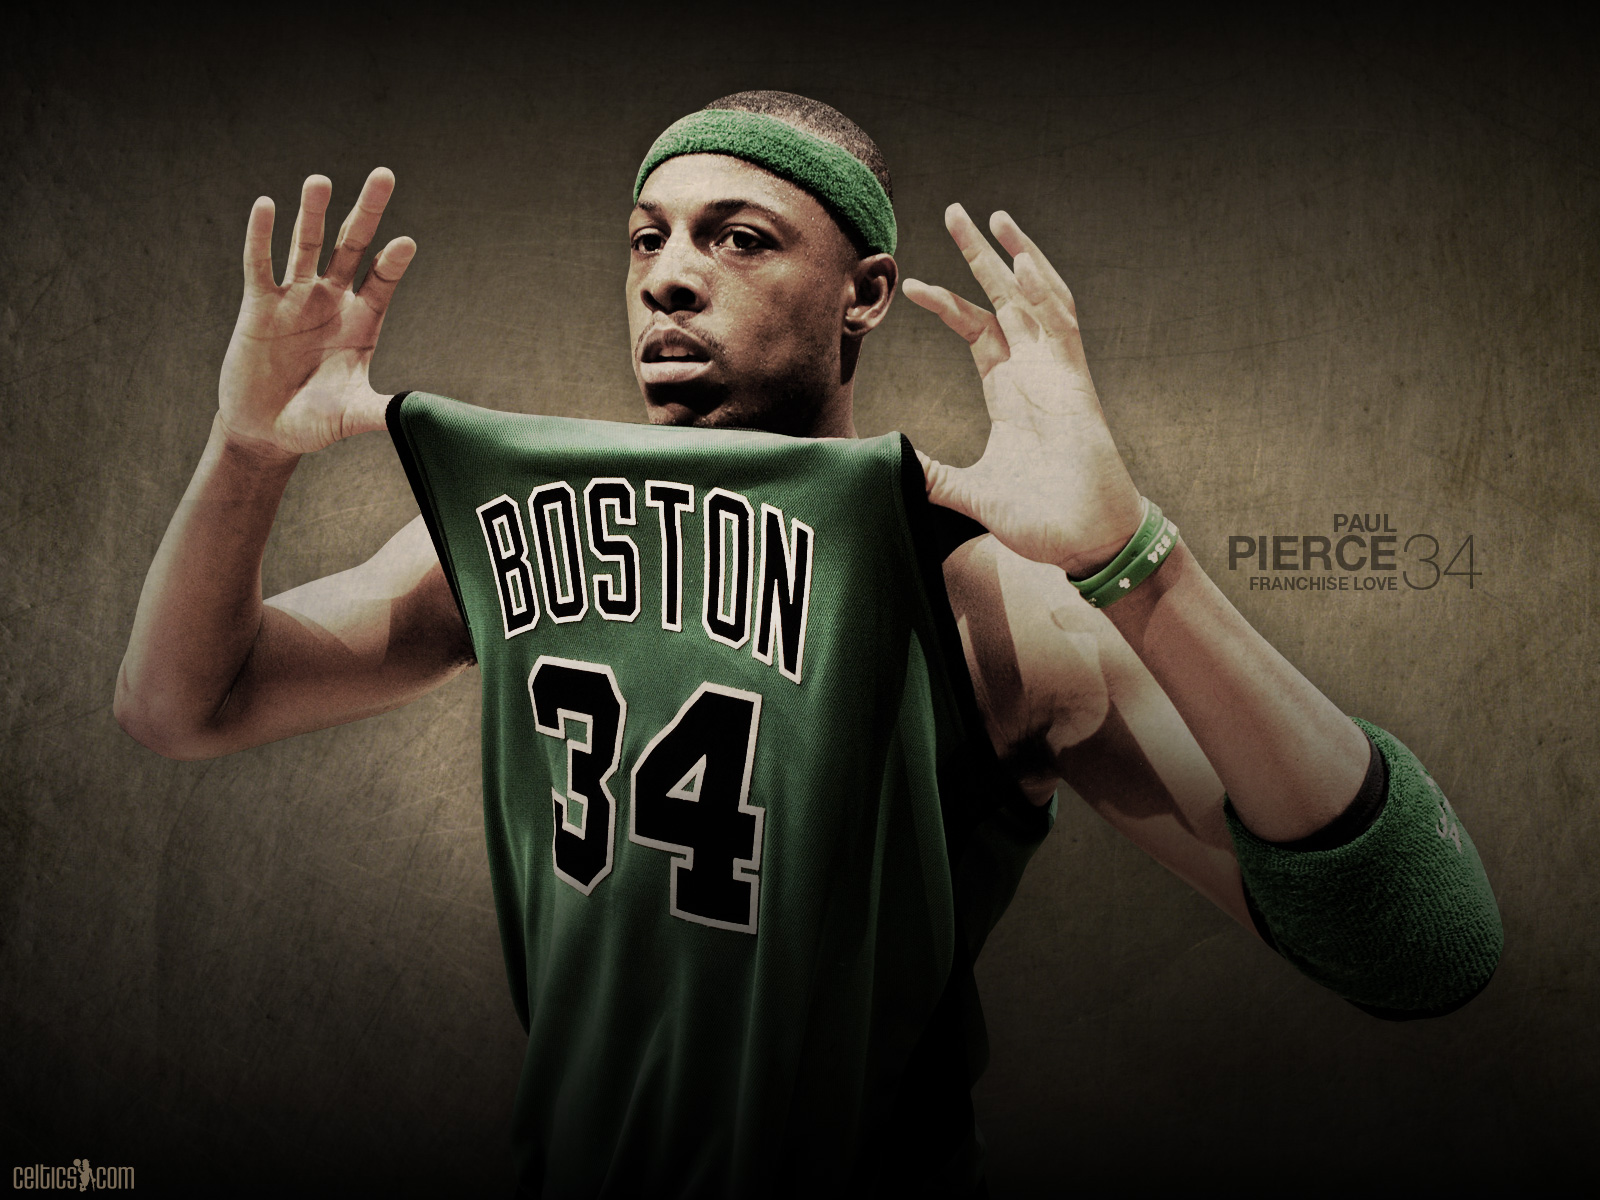 http://1.bp.blogspot.com/-poWLgaJhNi4/Tft-9v2tIkI/AAAAAAAACGE/Em7l-0d0UUk/s1600/Paul-Pierce-wallpaper-boston-celtics-74972_1600_1200.jpg